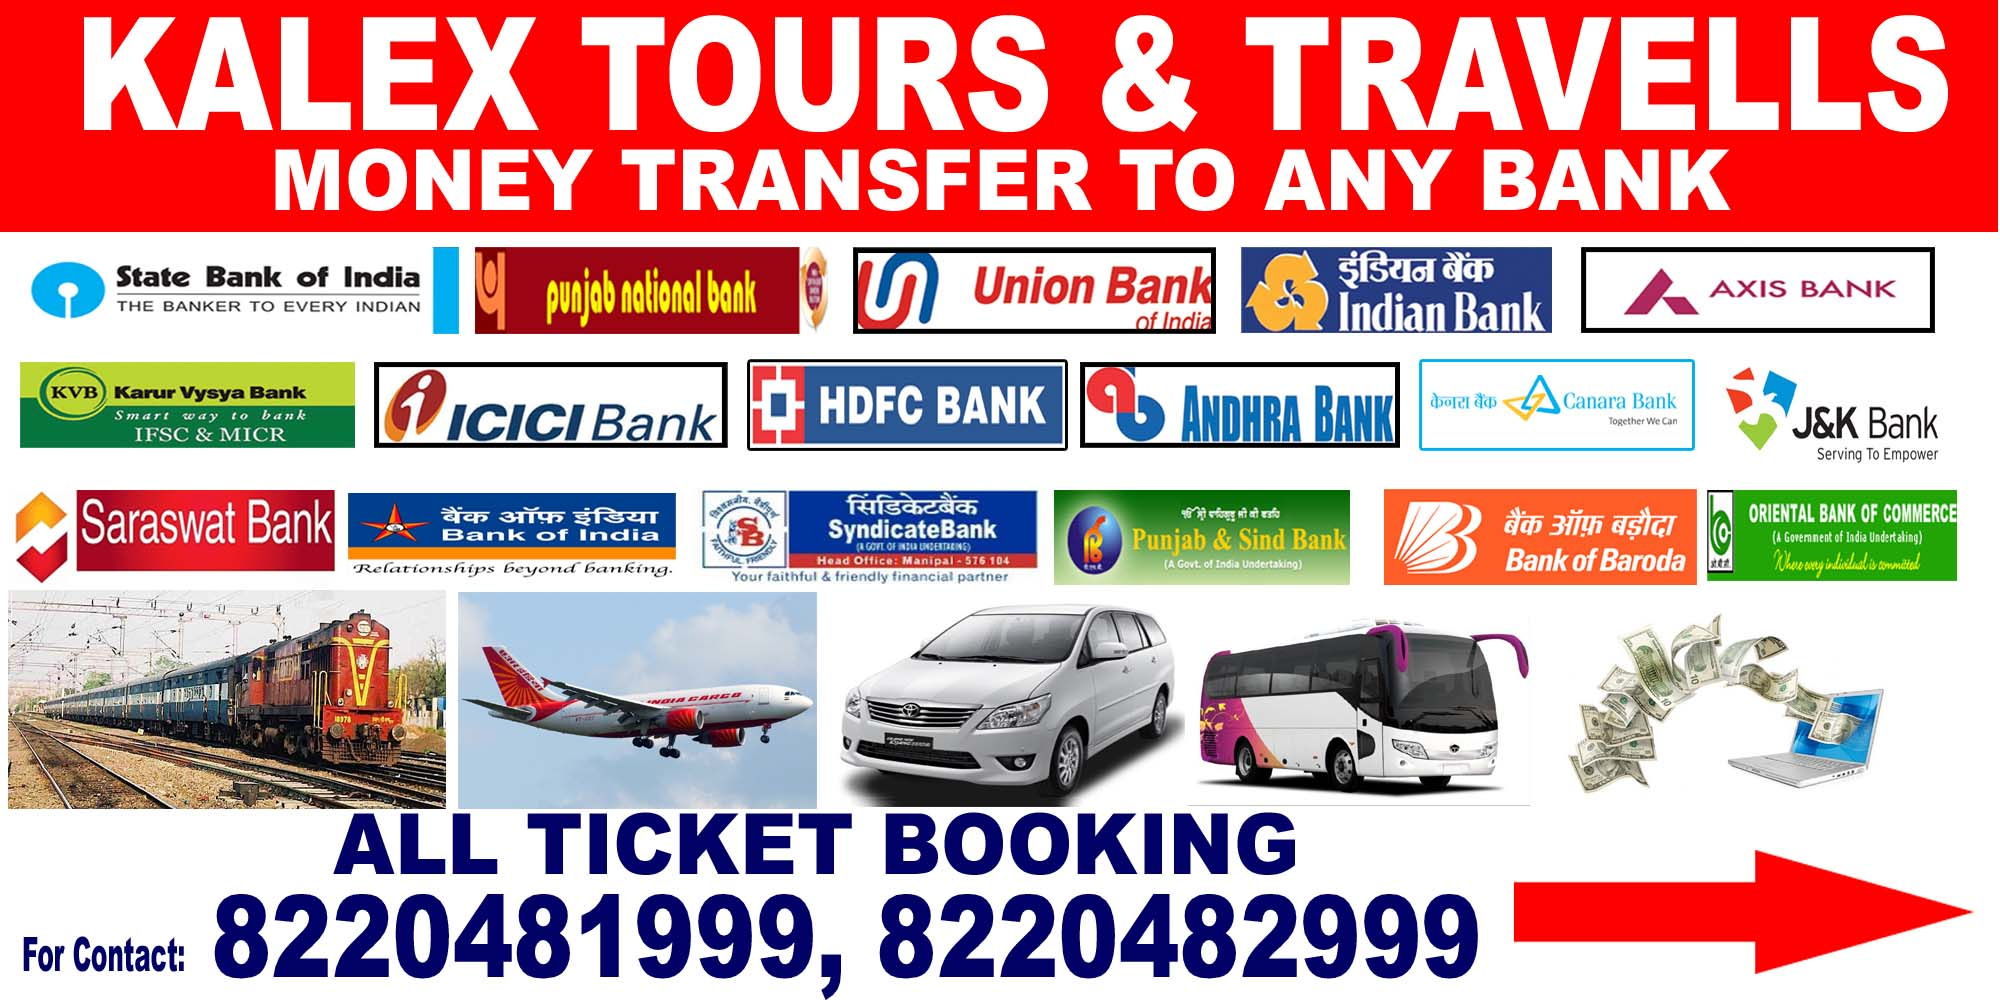 Kalex Tours & Travels